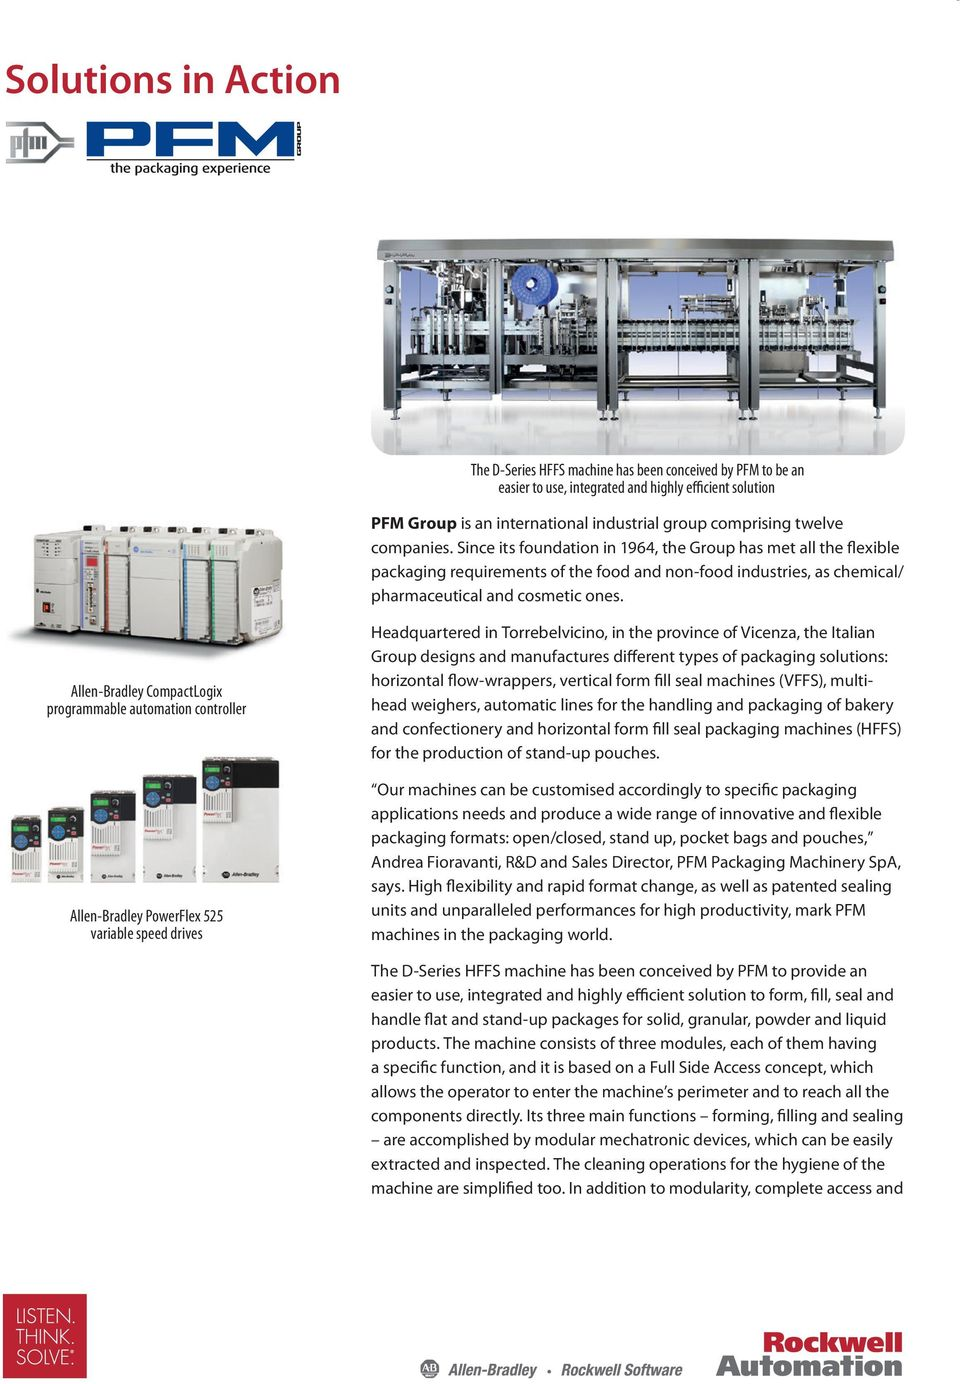 Allen-Bradley CompactLogix programmable automation controller Allen-Bradley PowerFlex 525 variable speed drives Headquartered in Torrebelvicino, in the province of Vicenza, the Italian Group designs